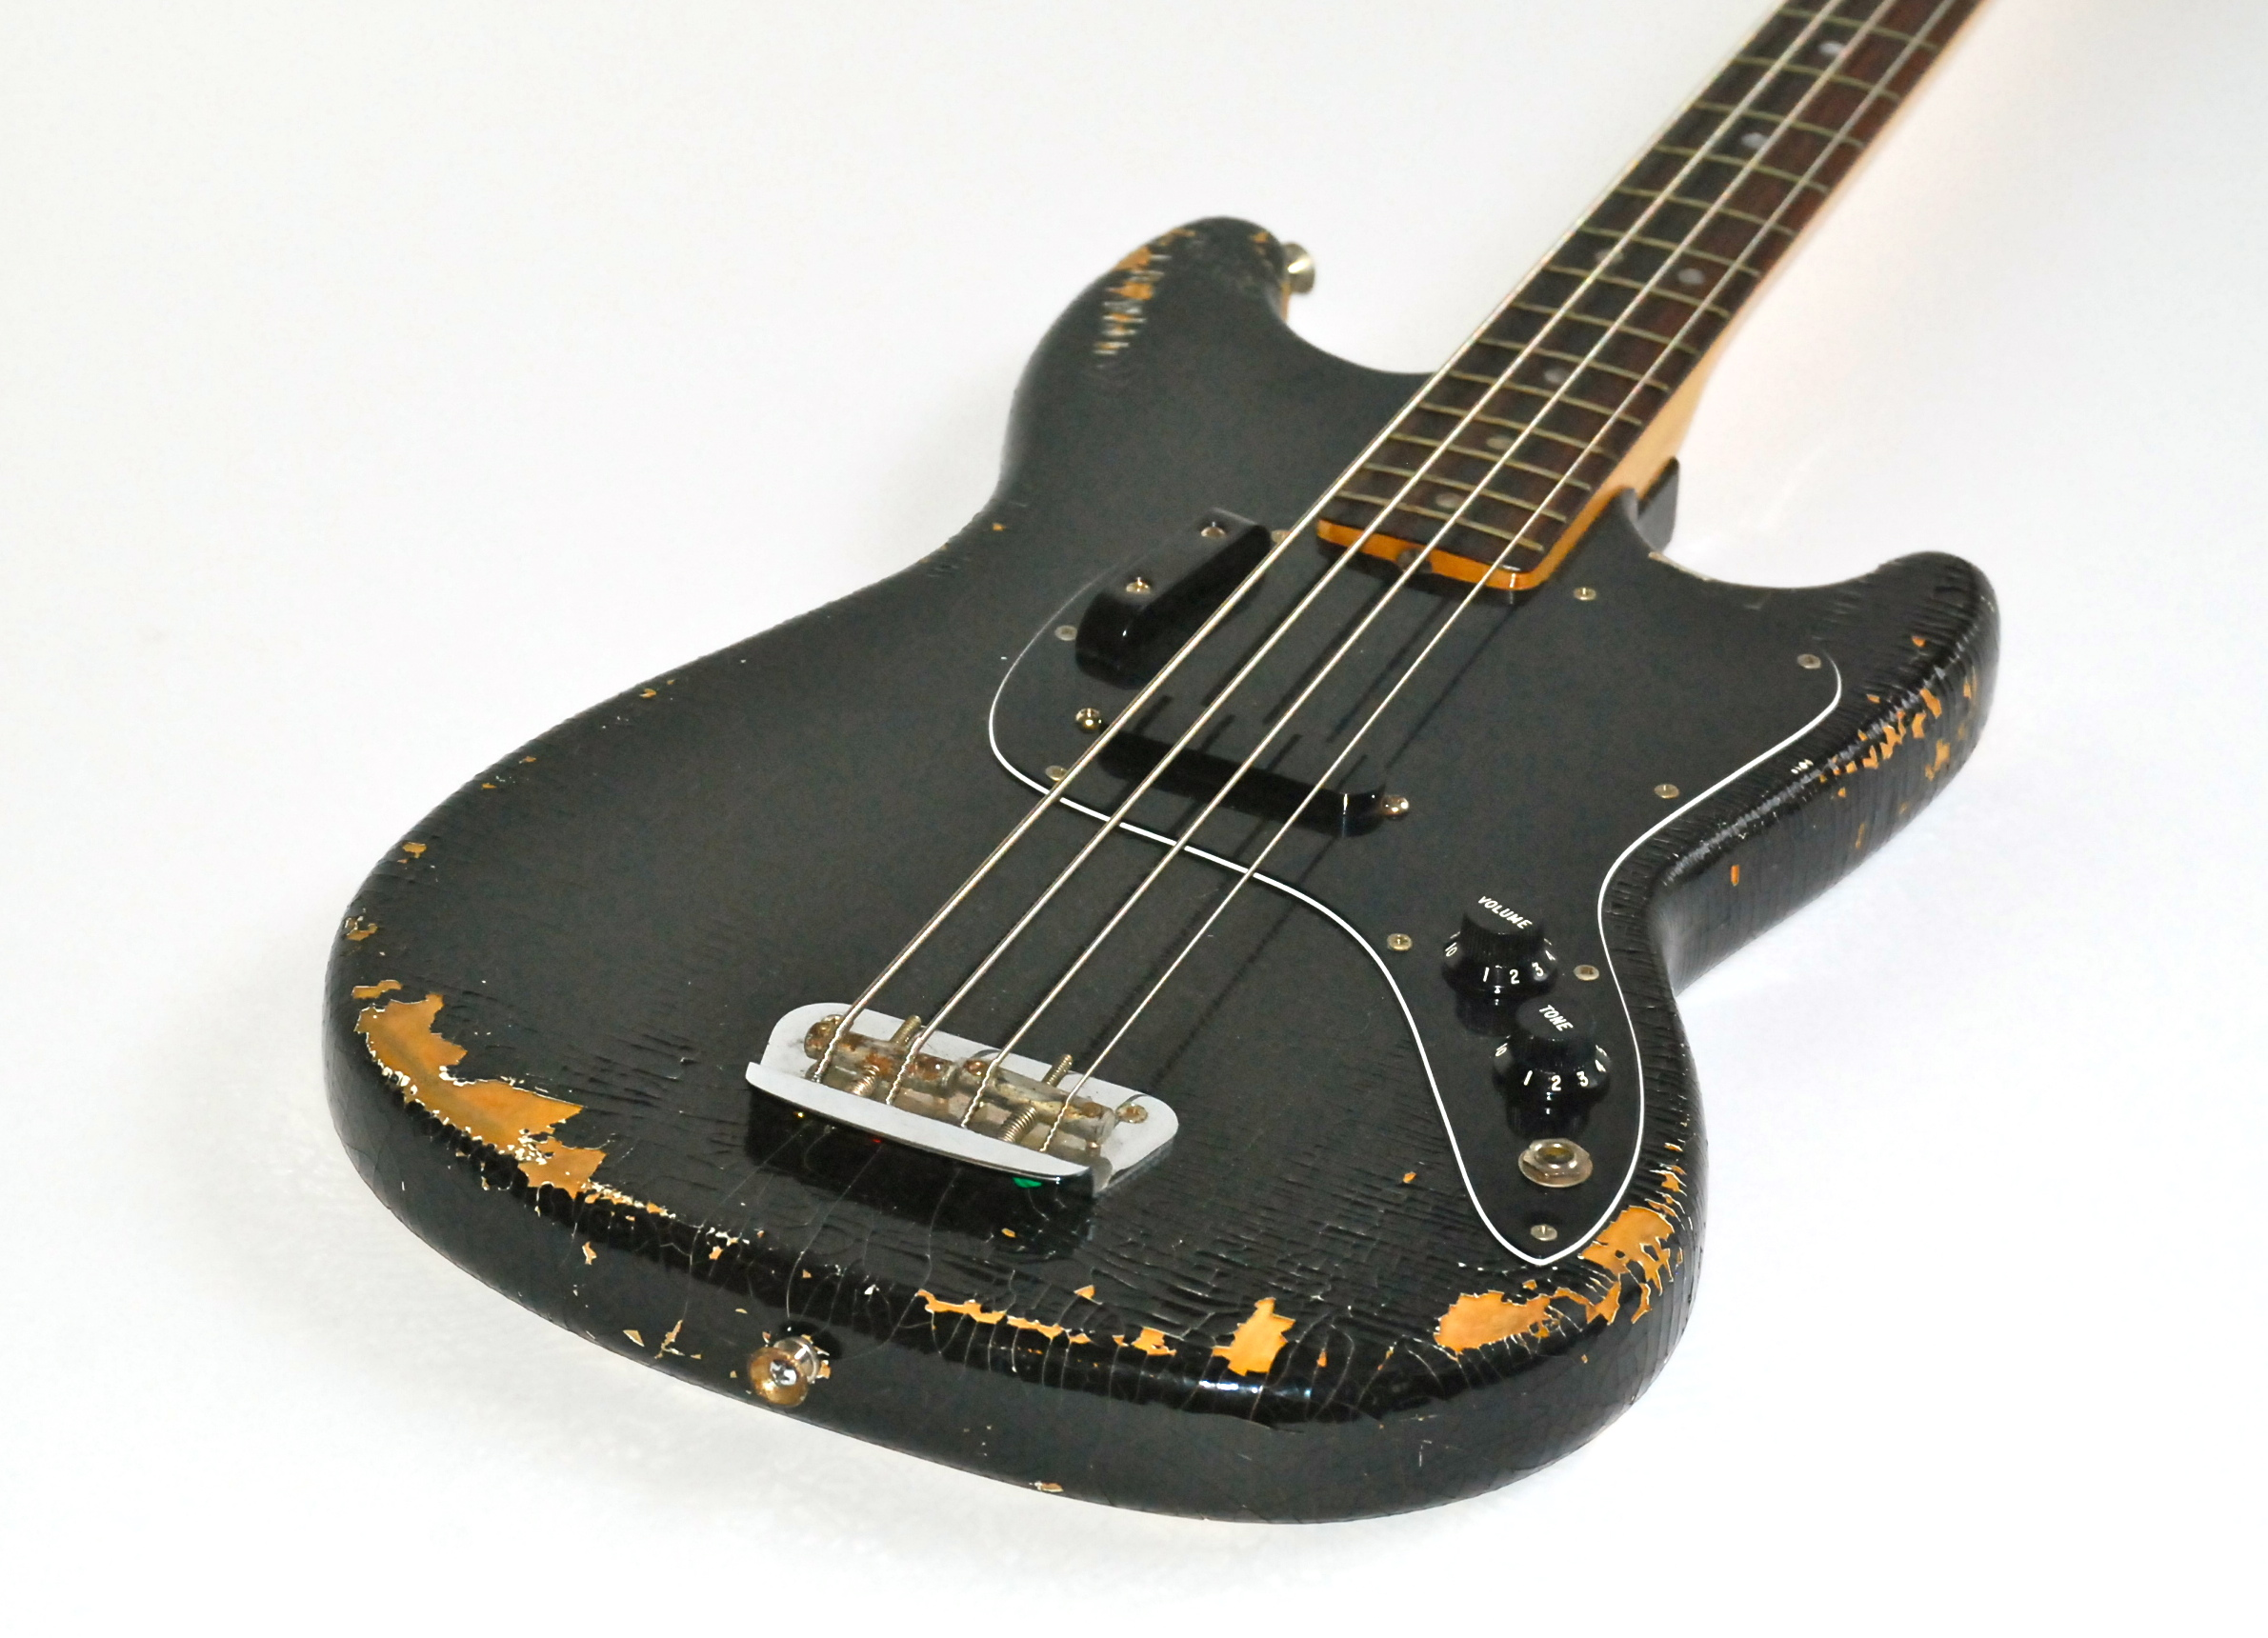 dating fender musicmaster bass Besides, no article in the dating fender amps by serial number series would be  this is similar to the early '50s telecaster and precision bass having their own unique serial number system .